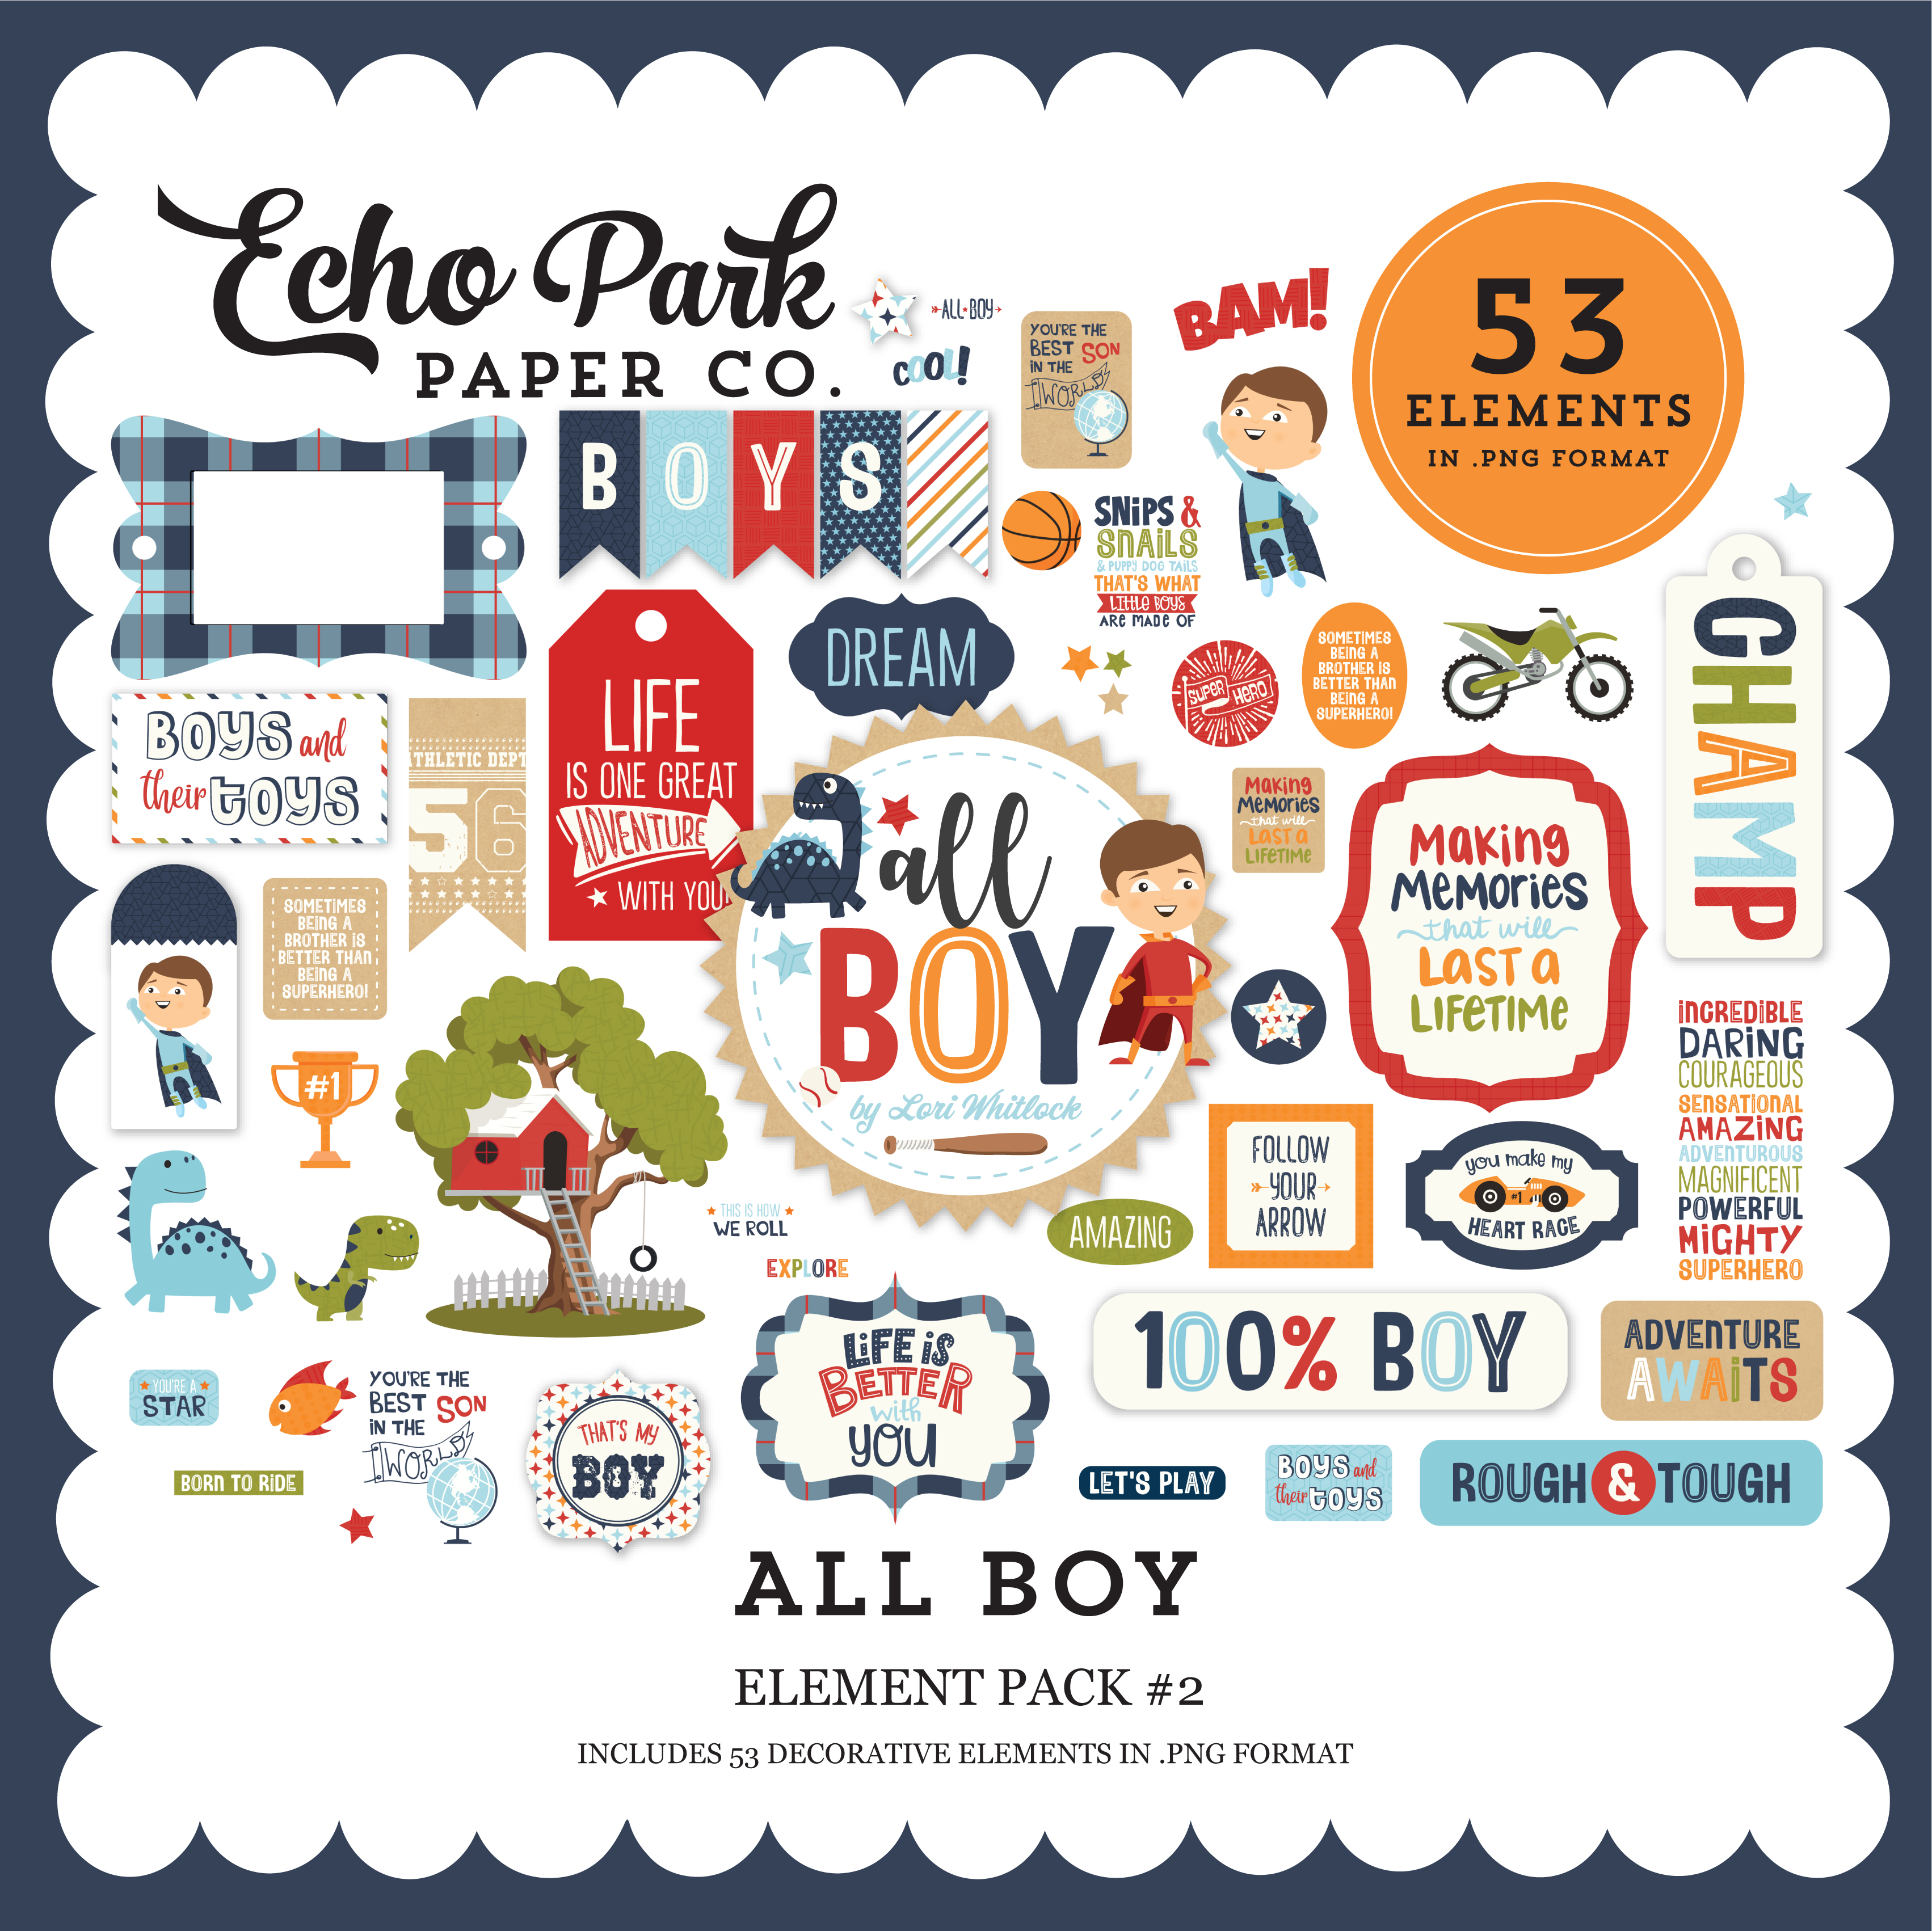 All Boy Element Pack #2